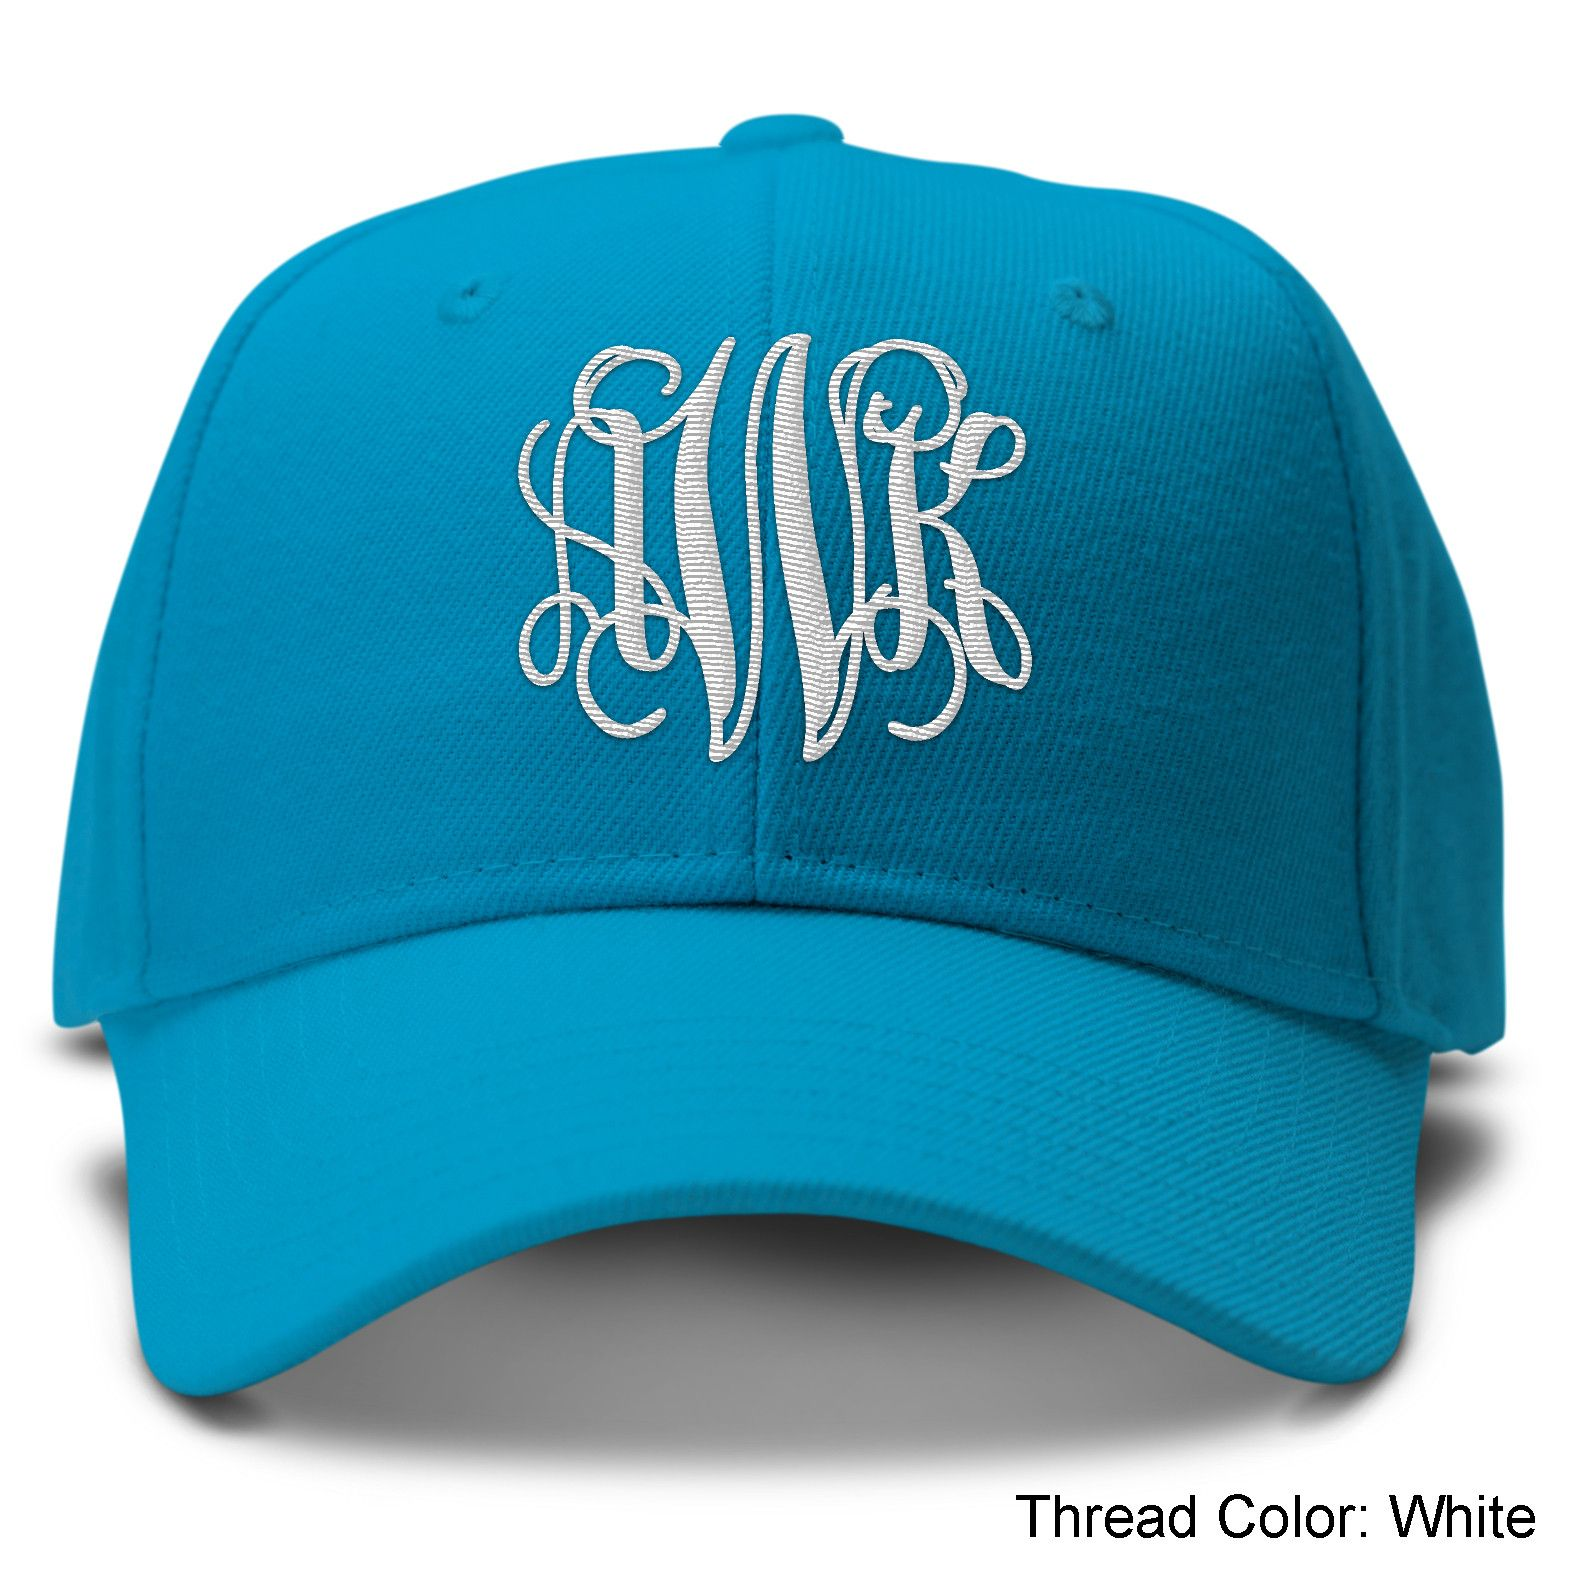 a5a5e70885f Teal Monogram Baseball Hat With Black Thread from mgramcases